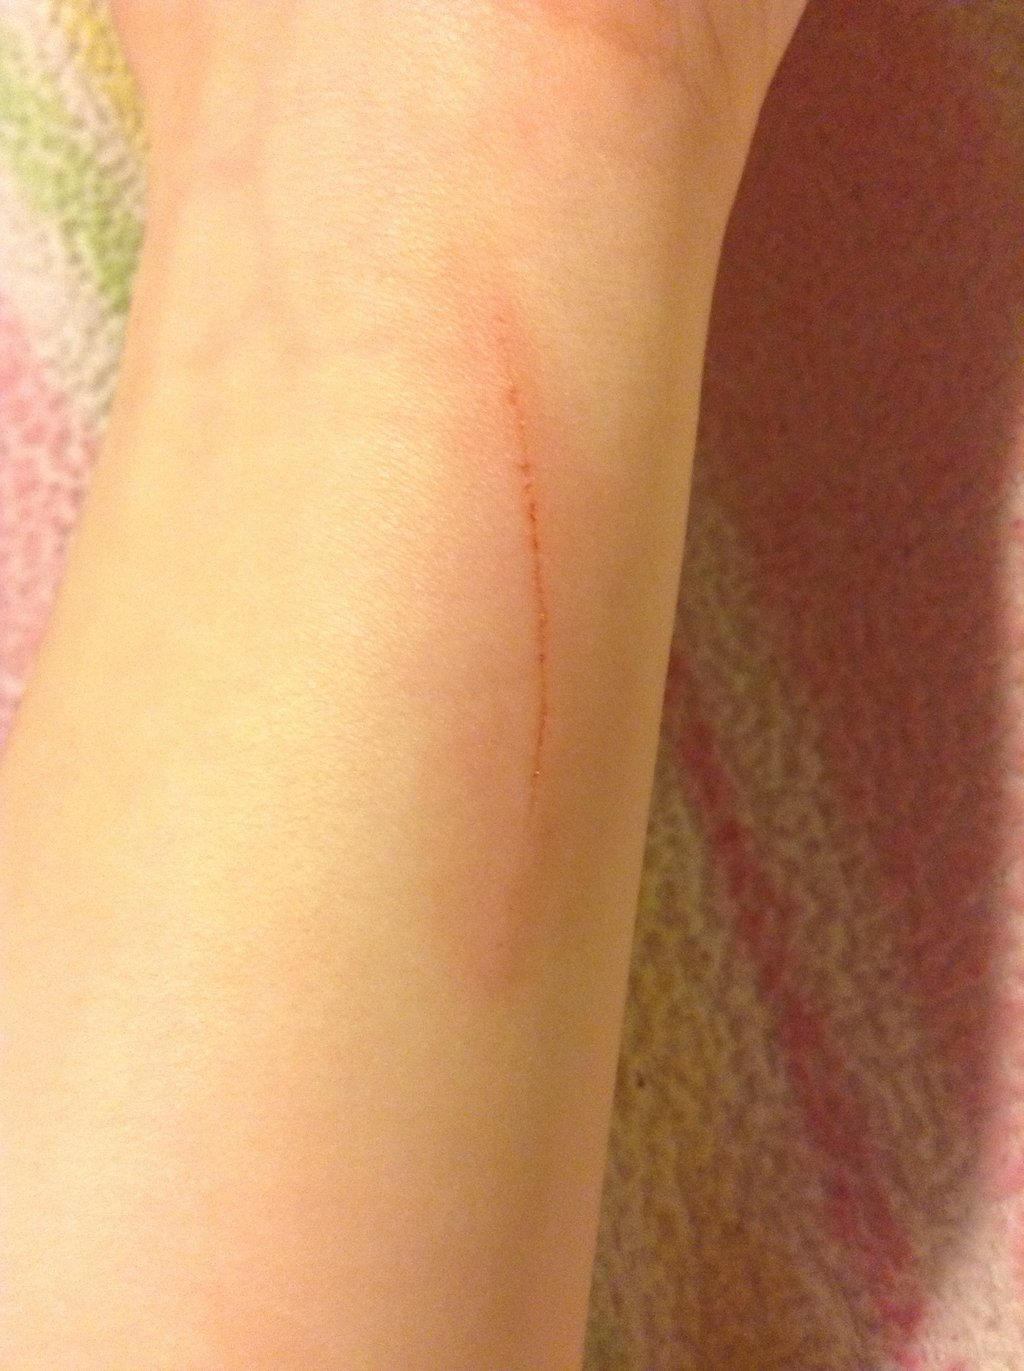 how to make cuts heal faster on your wrist